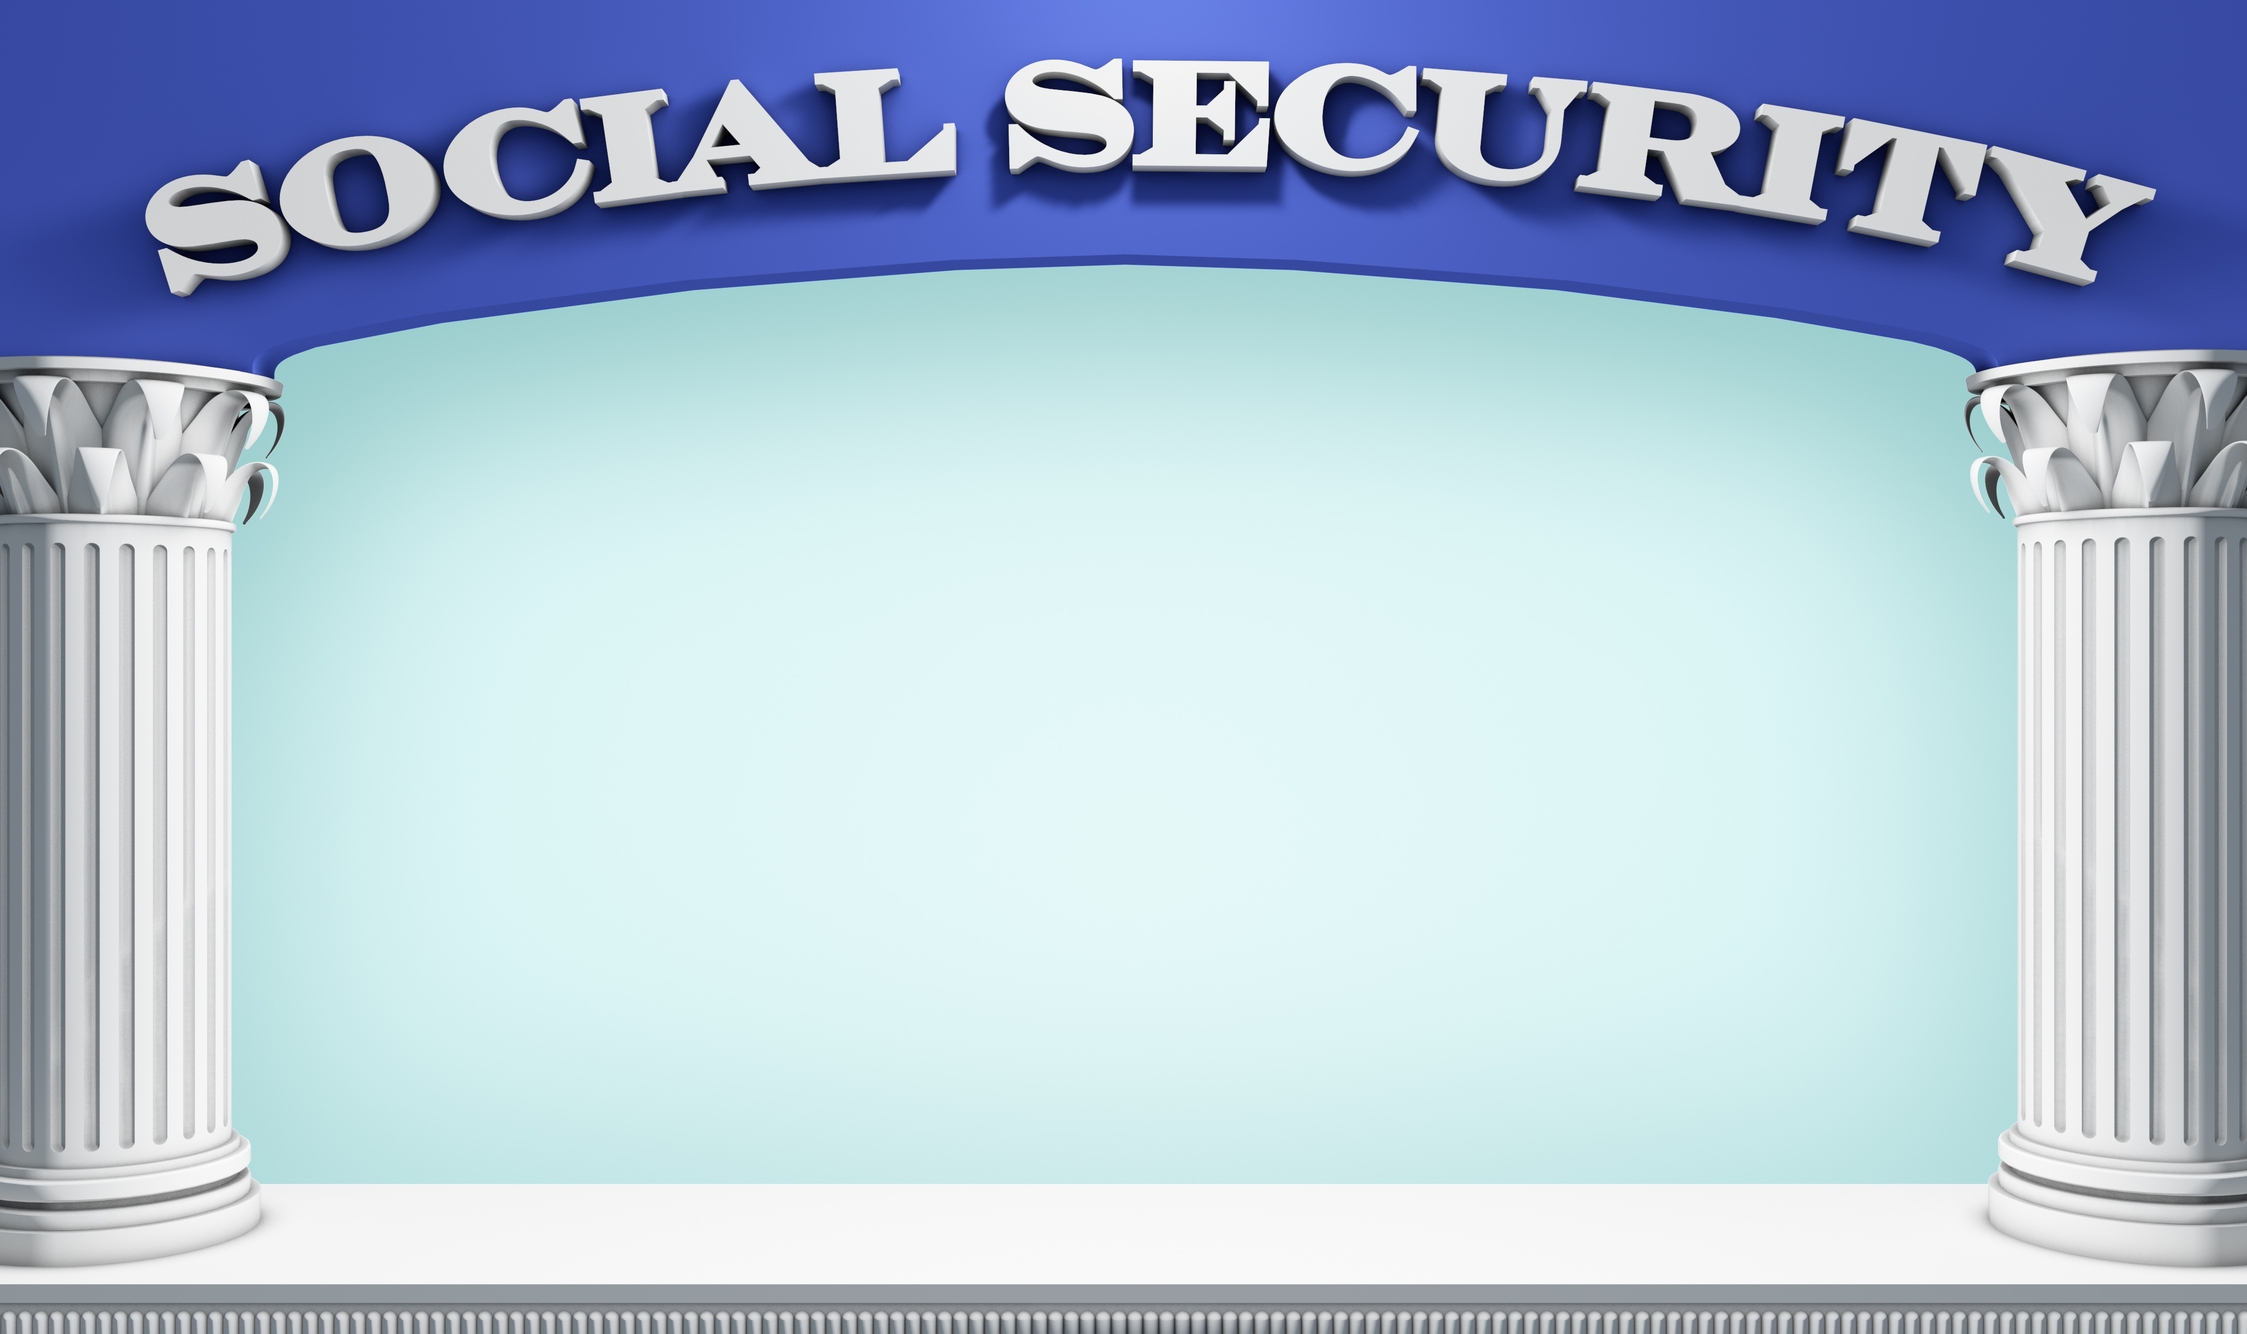 Get Savvy About: - SOCIAL SECURITY